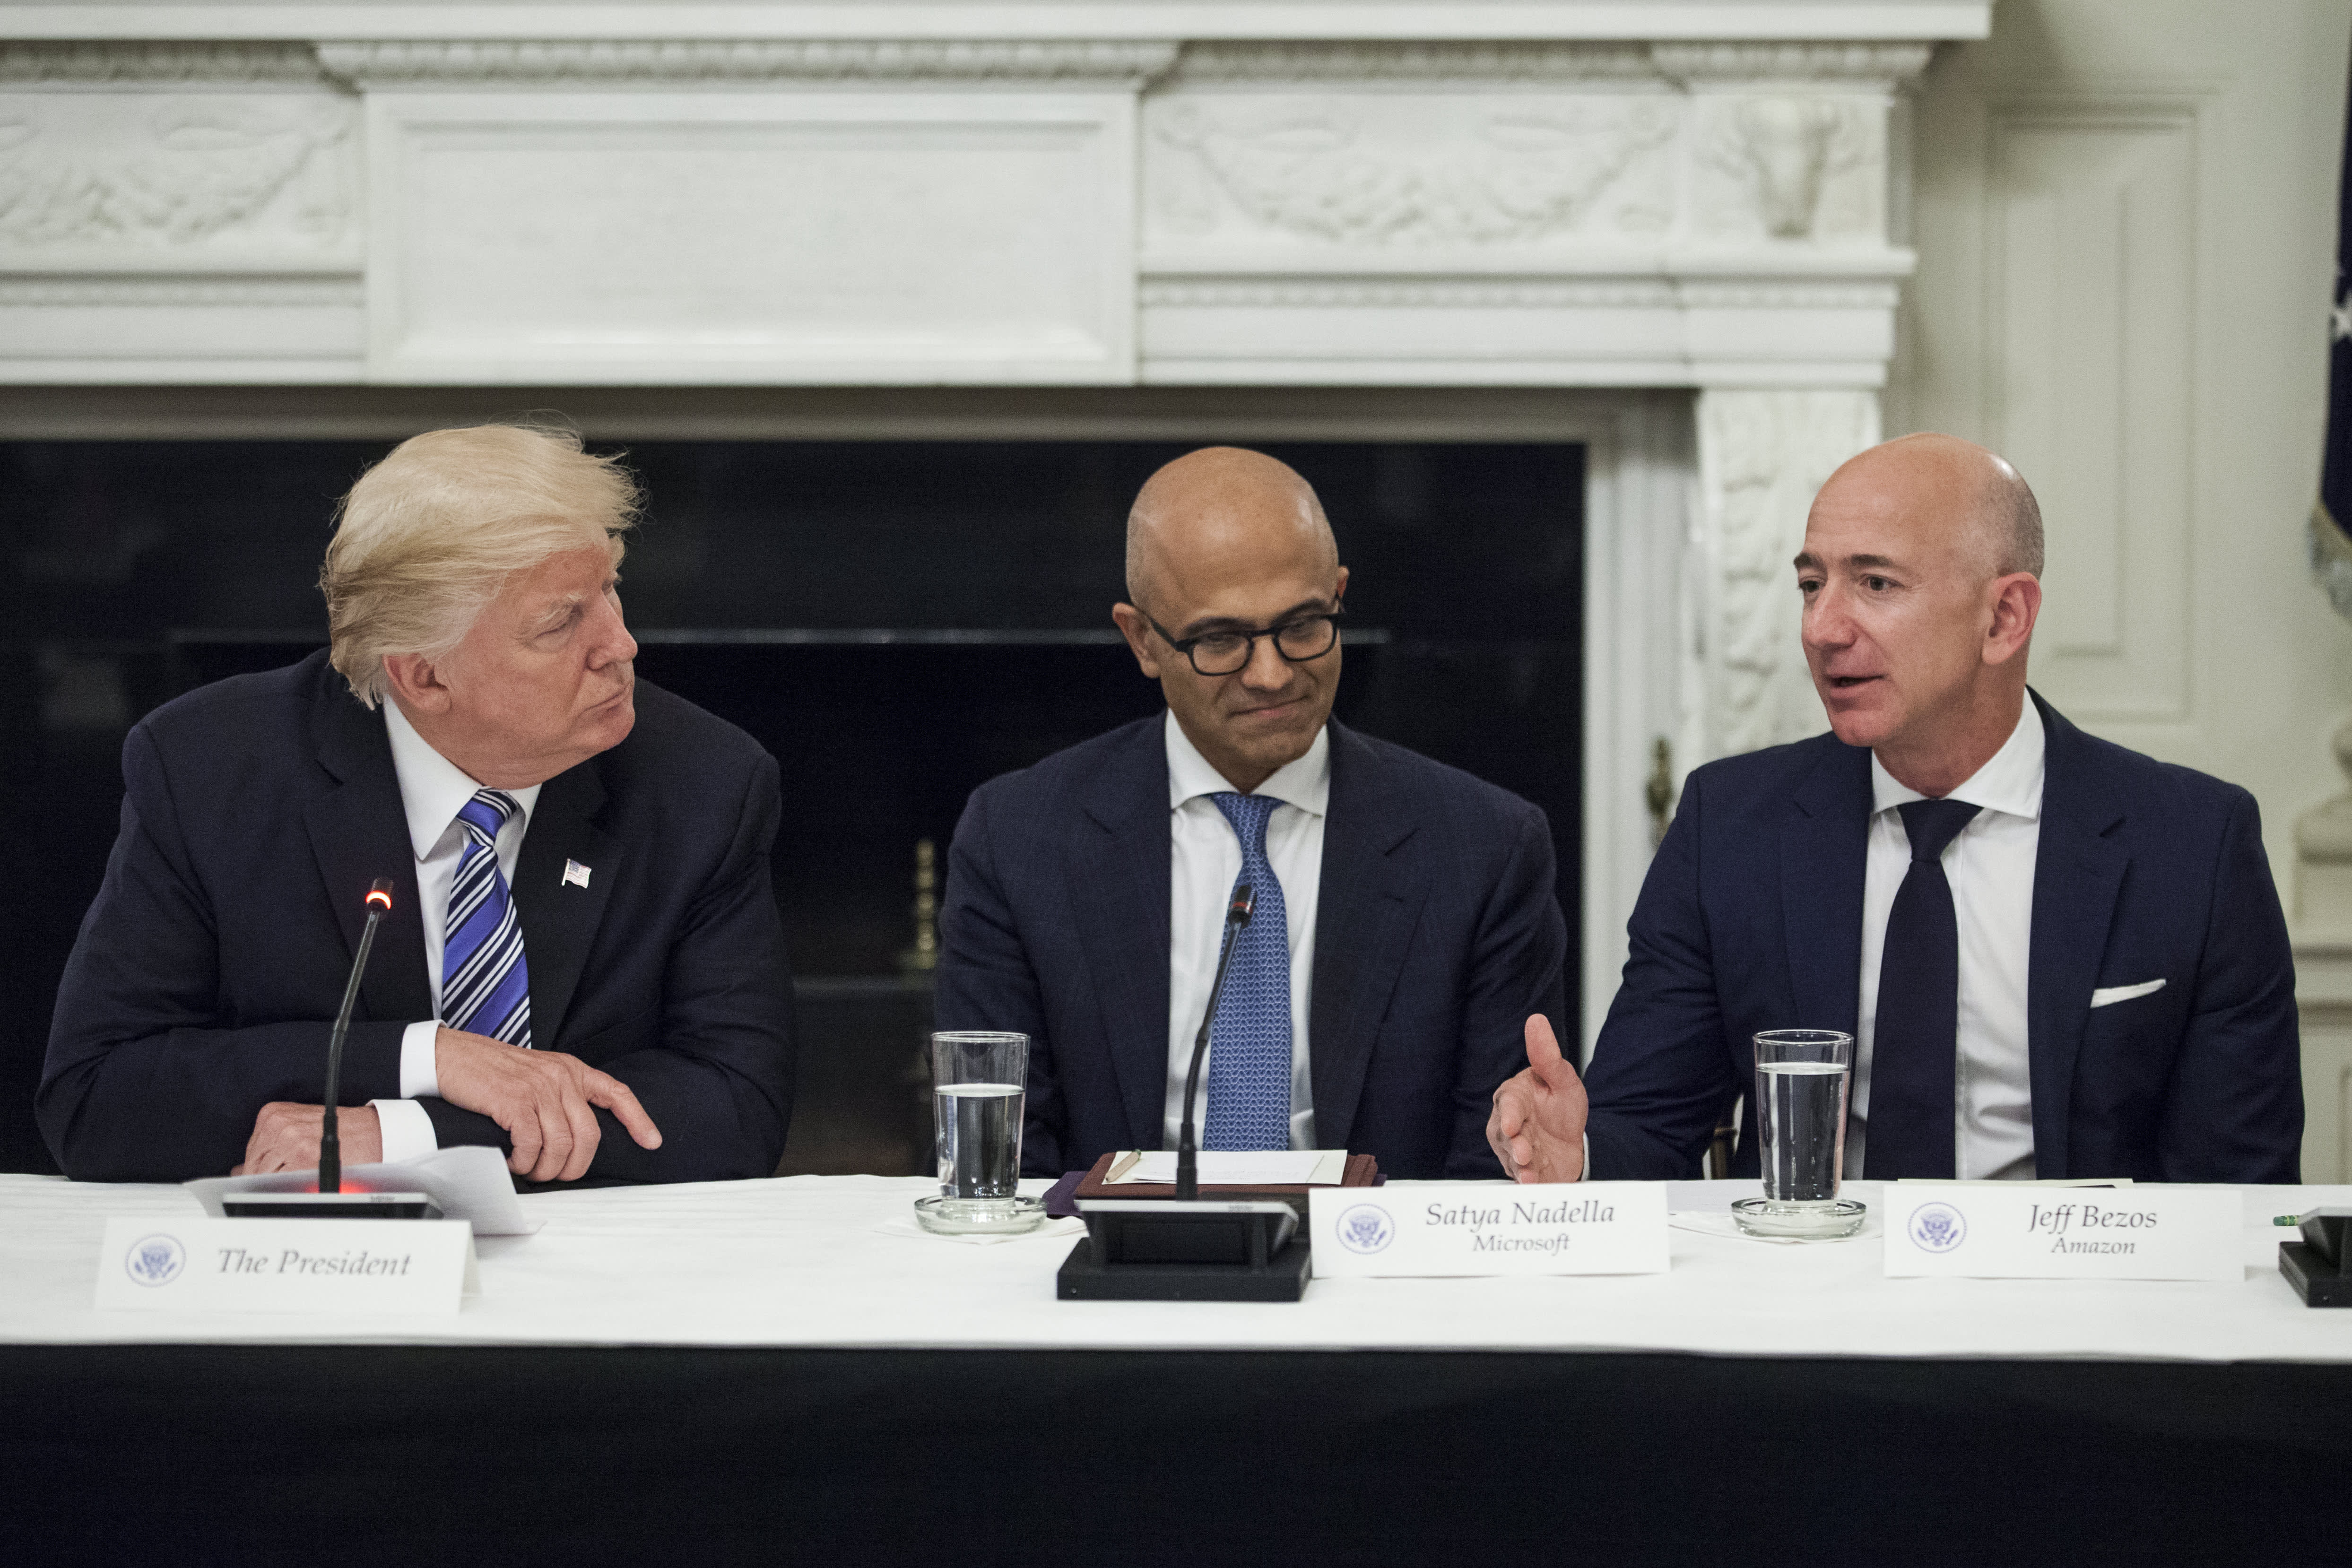 Republican lawmakers urge Trump not to delay the $10 billion Pentagon cloud contract Amazon and Microsoft want